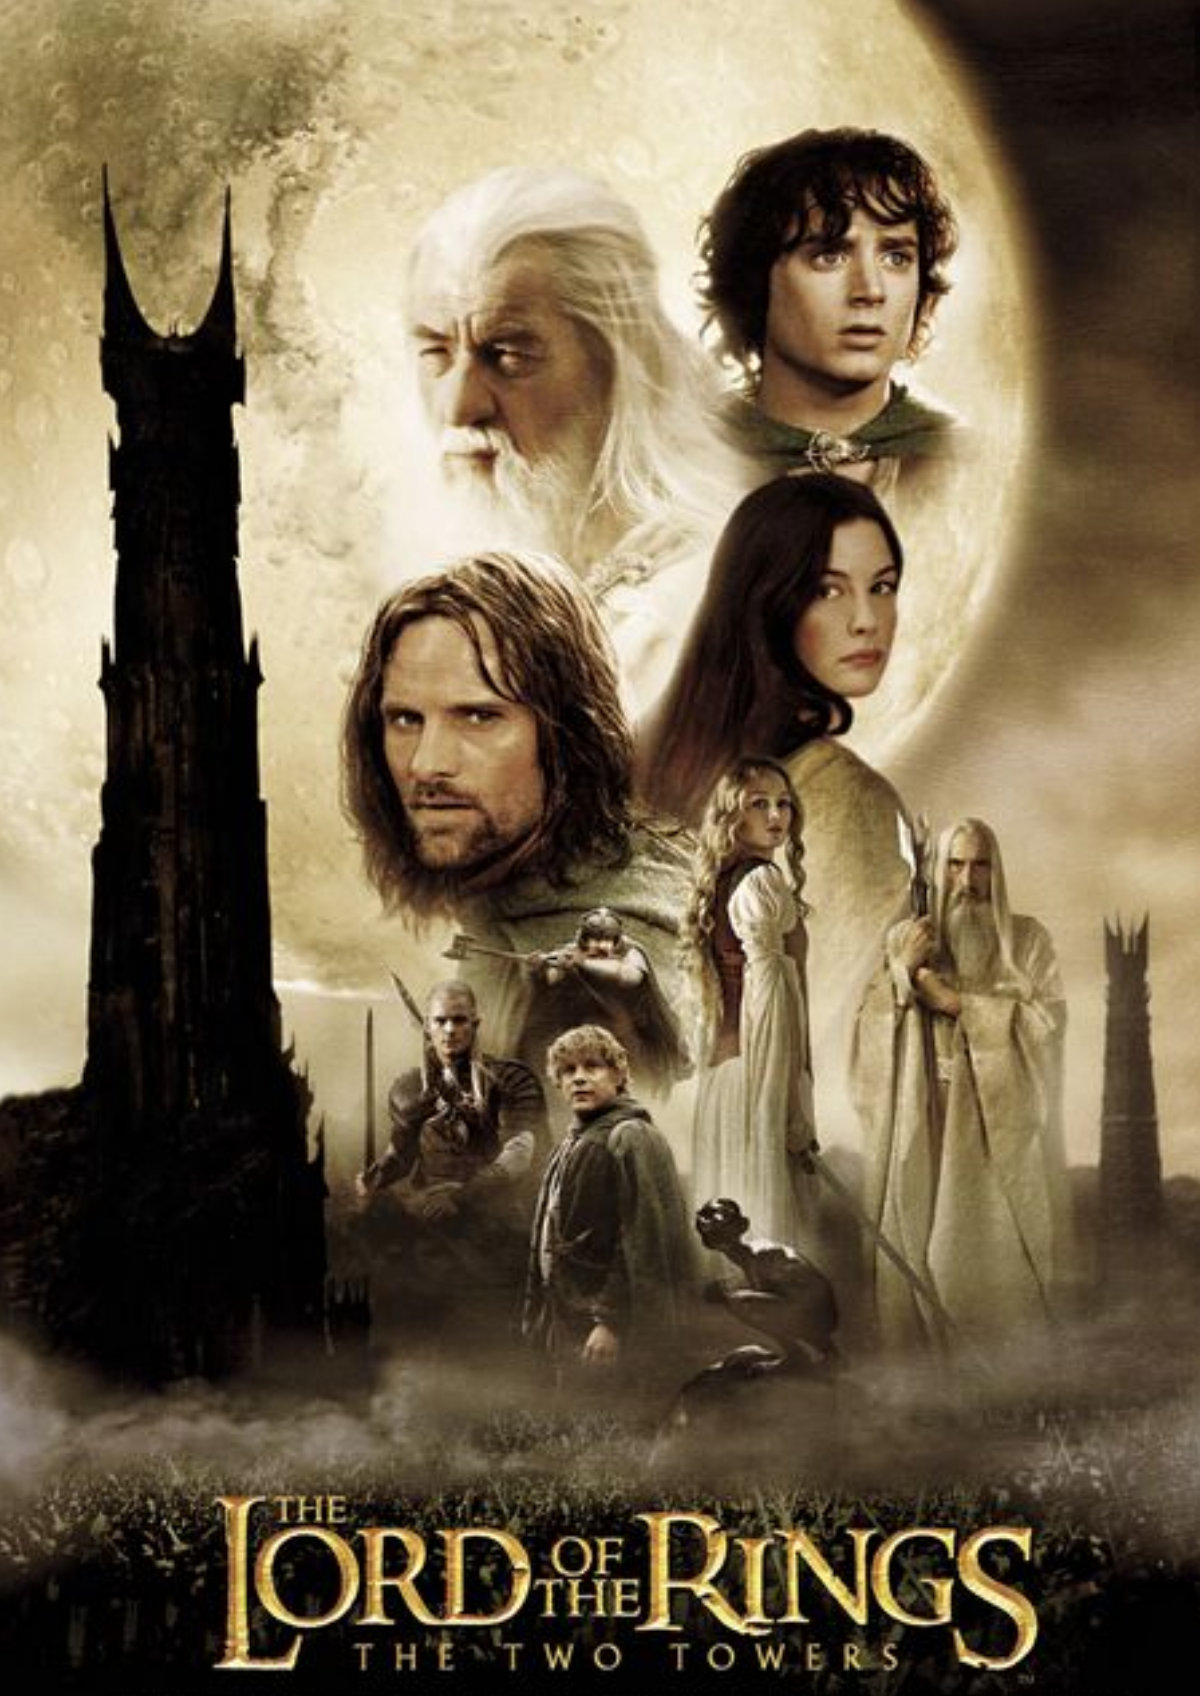 'The Lord Of The Rings: The Two Towers' movie poster